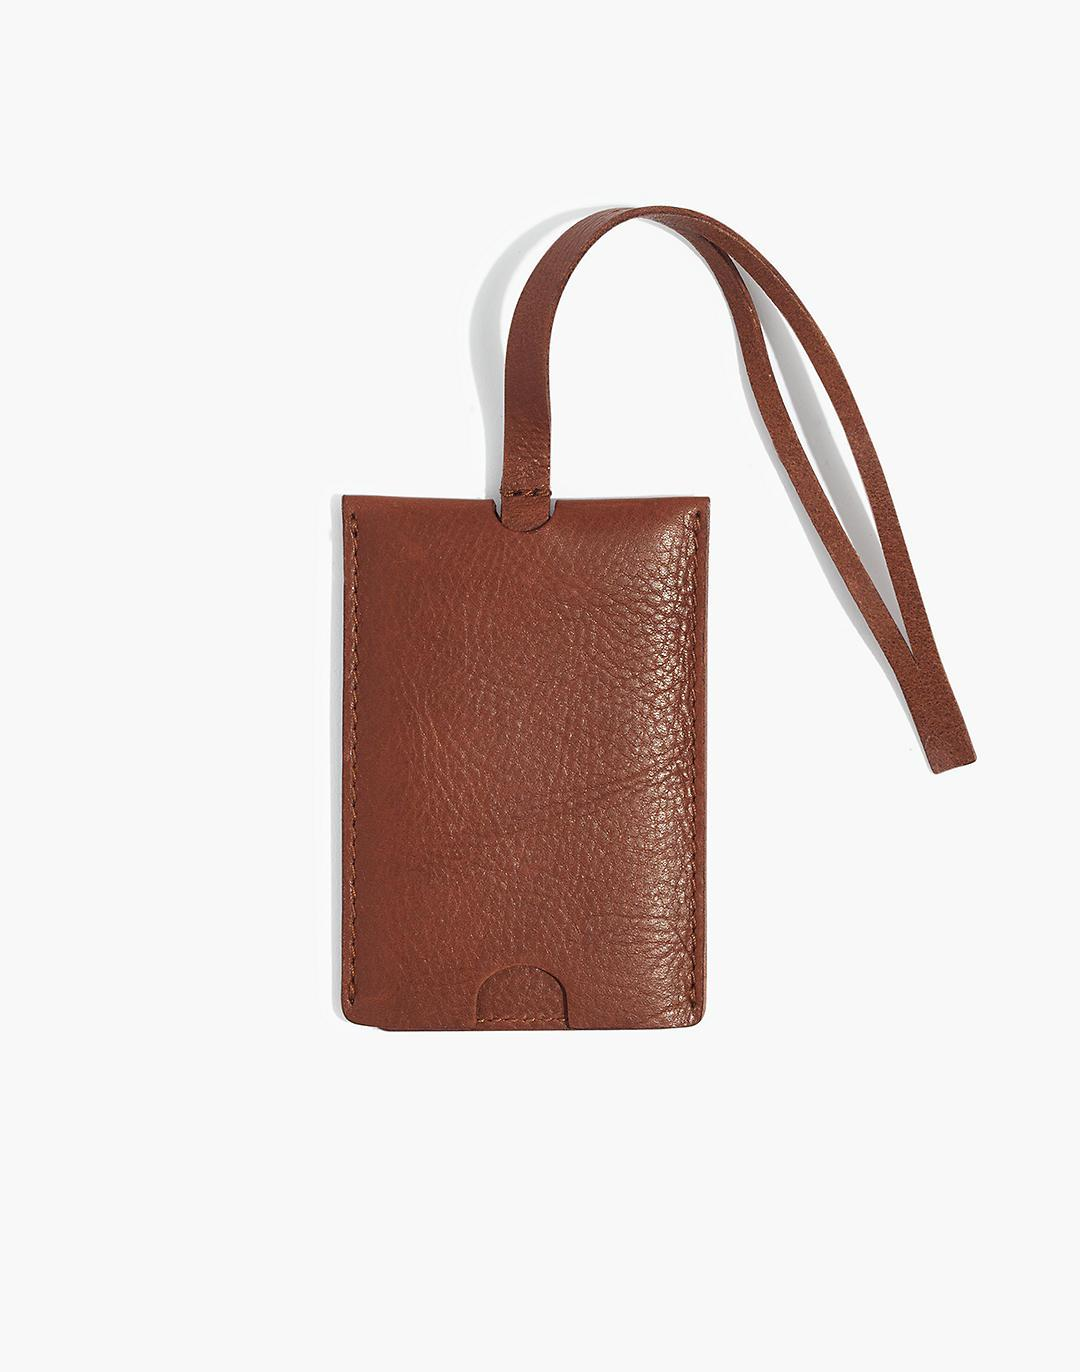 The Leather Luggage Tag